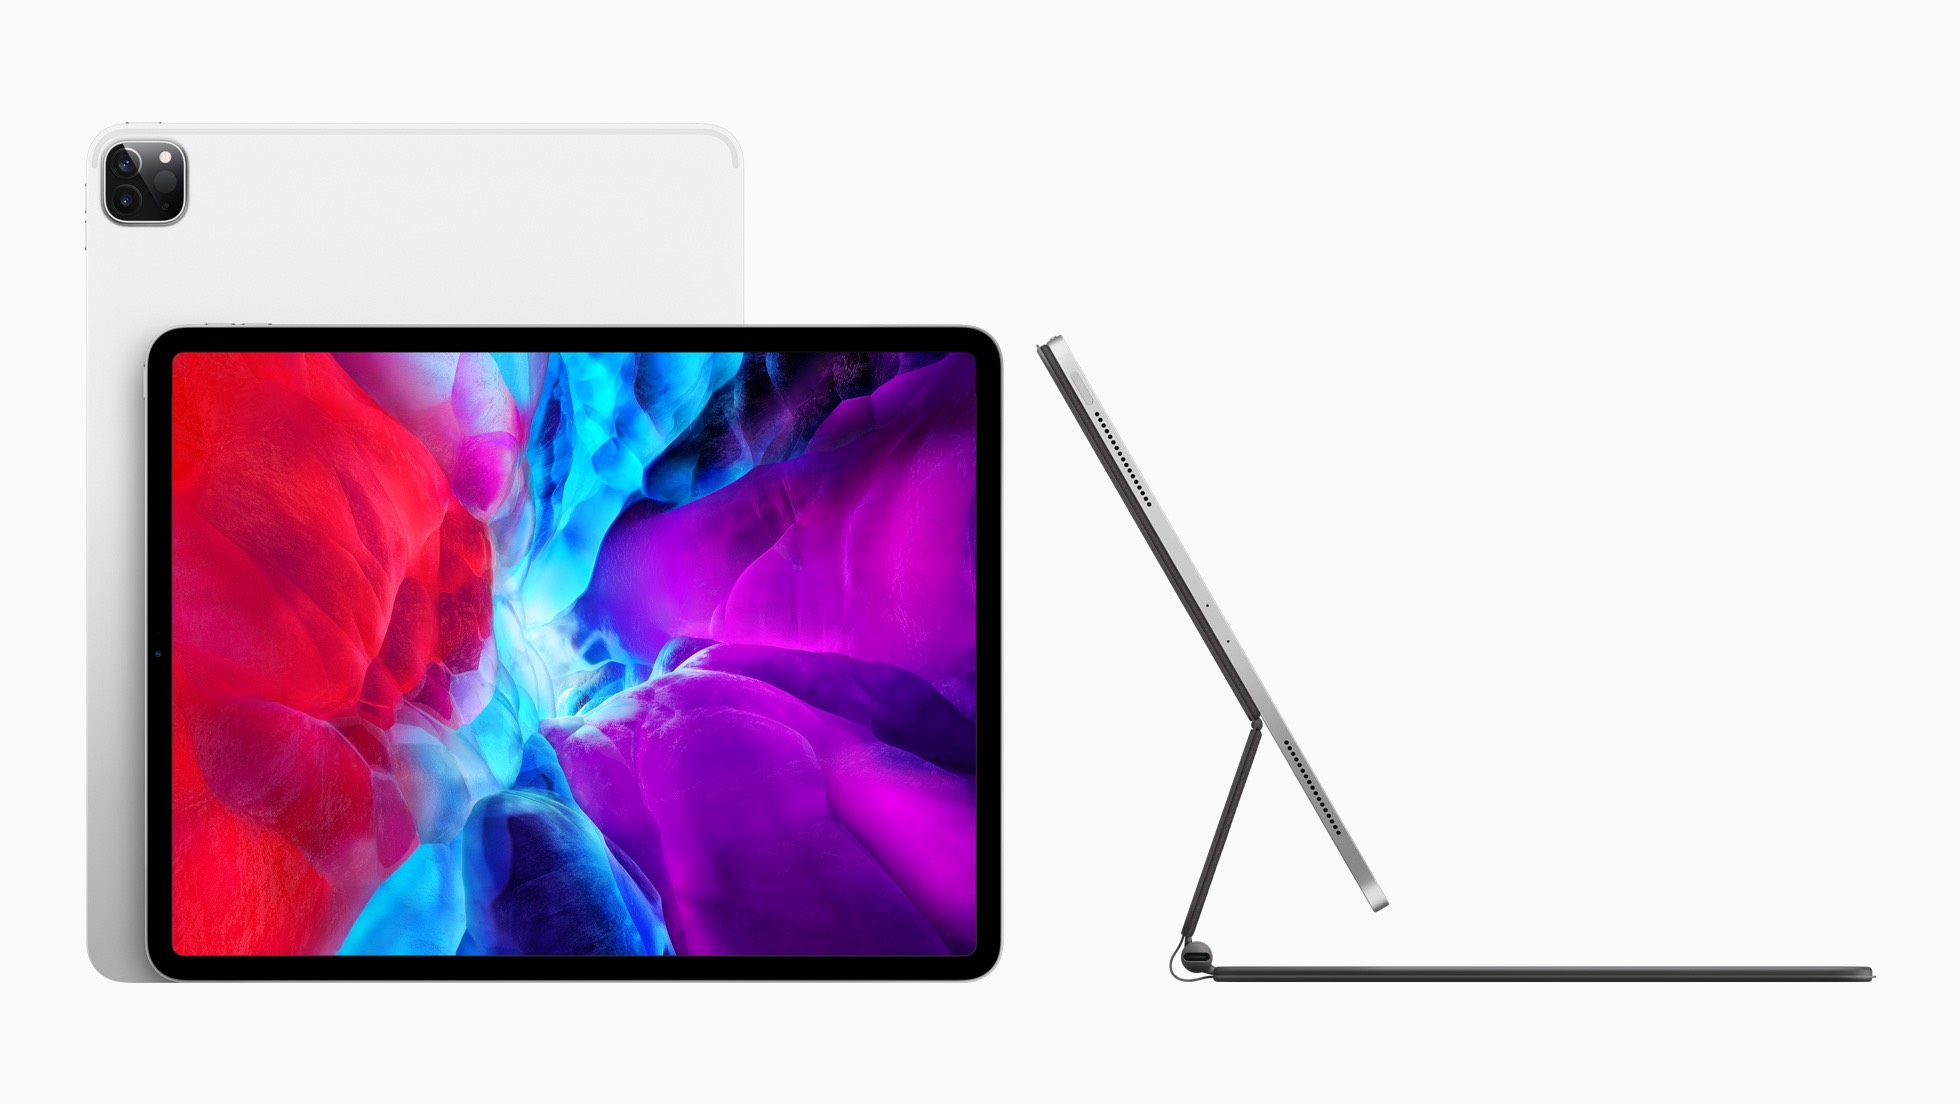 Apple may release new iPads in April